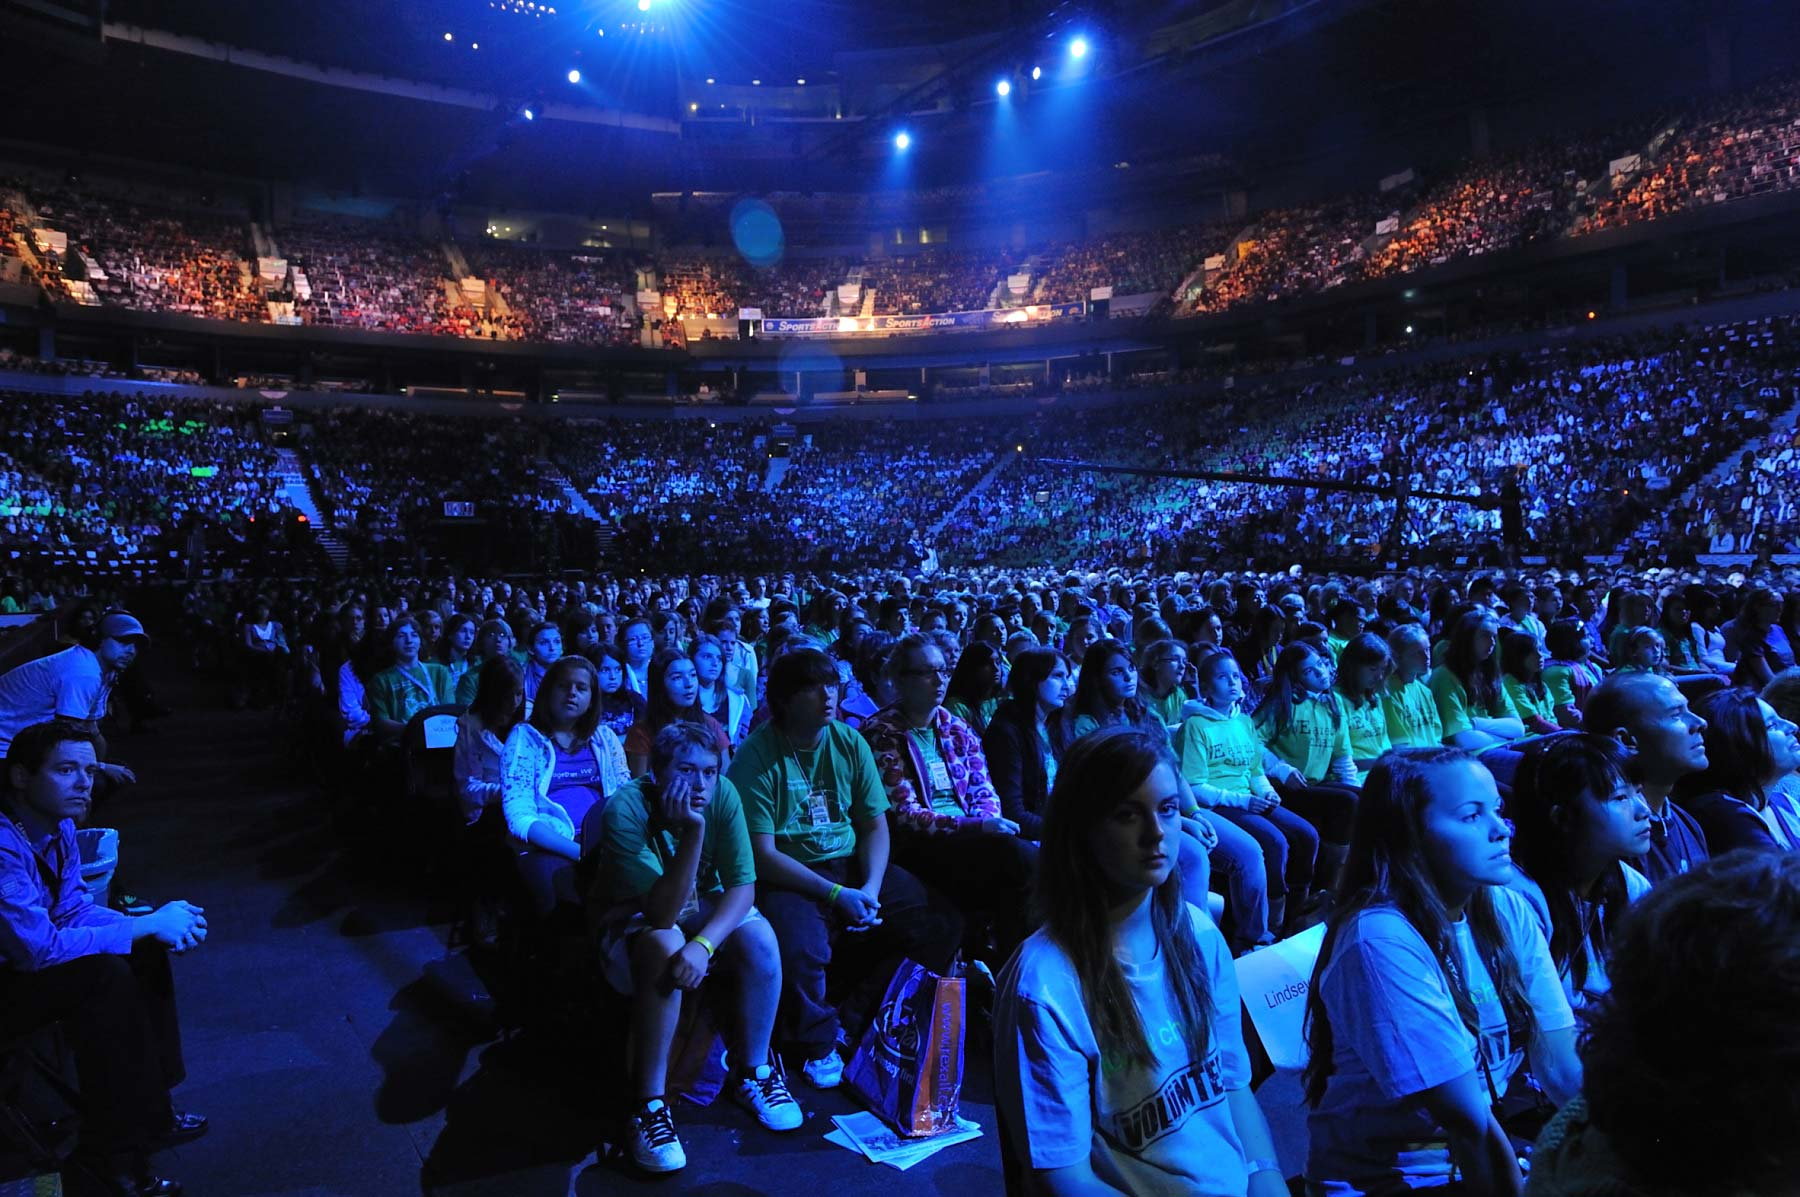 Approximately 16 000 youth attended the event held at General Motor Place, in Vancouver, British Columbia.